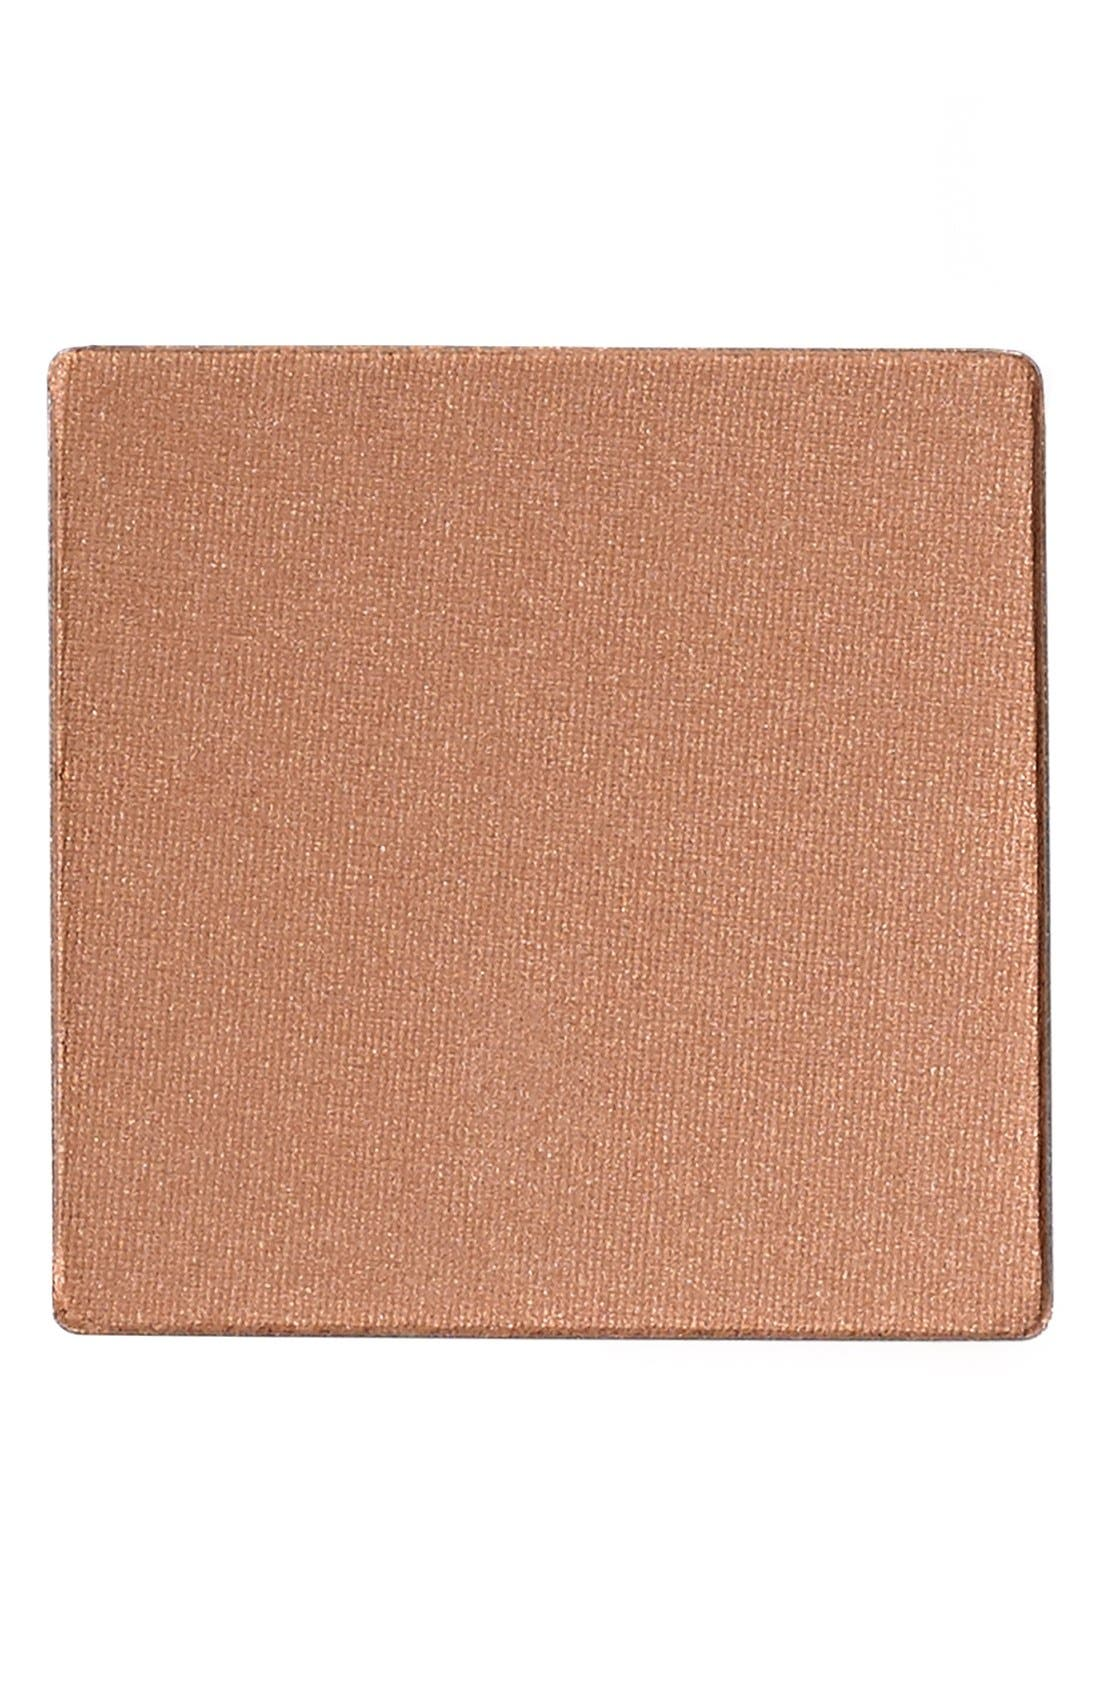 Sunkissed Bronzer Refill,                             Alternate thumbnail 2, color,                             200